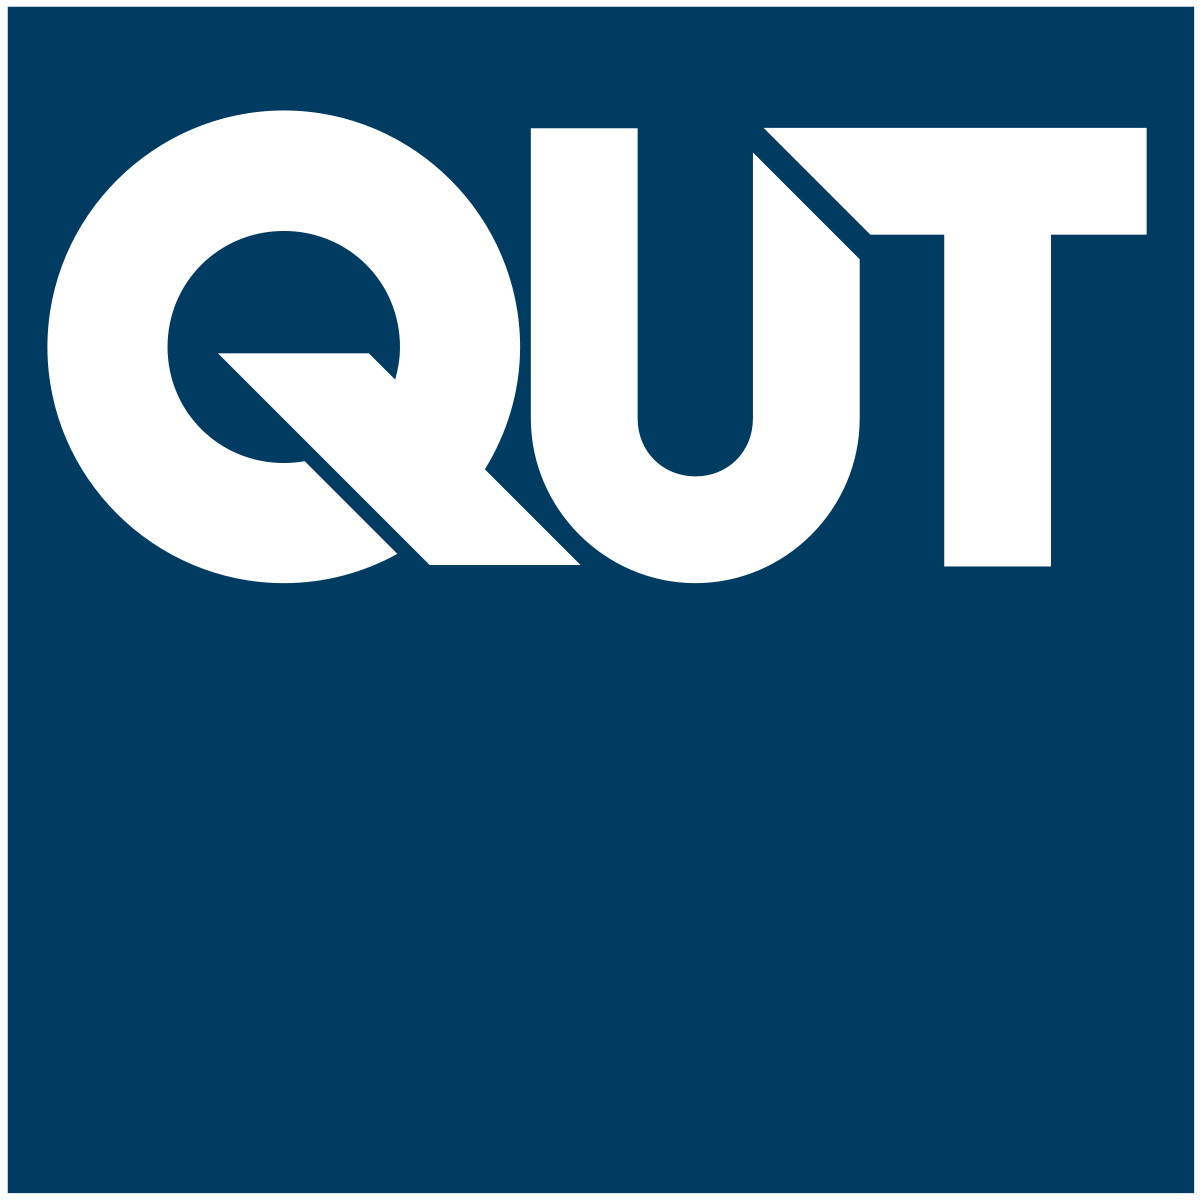 Logo of the Queensland University of Technology (QUT).